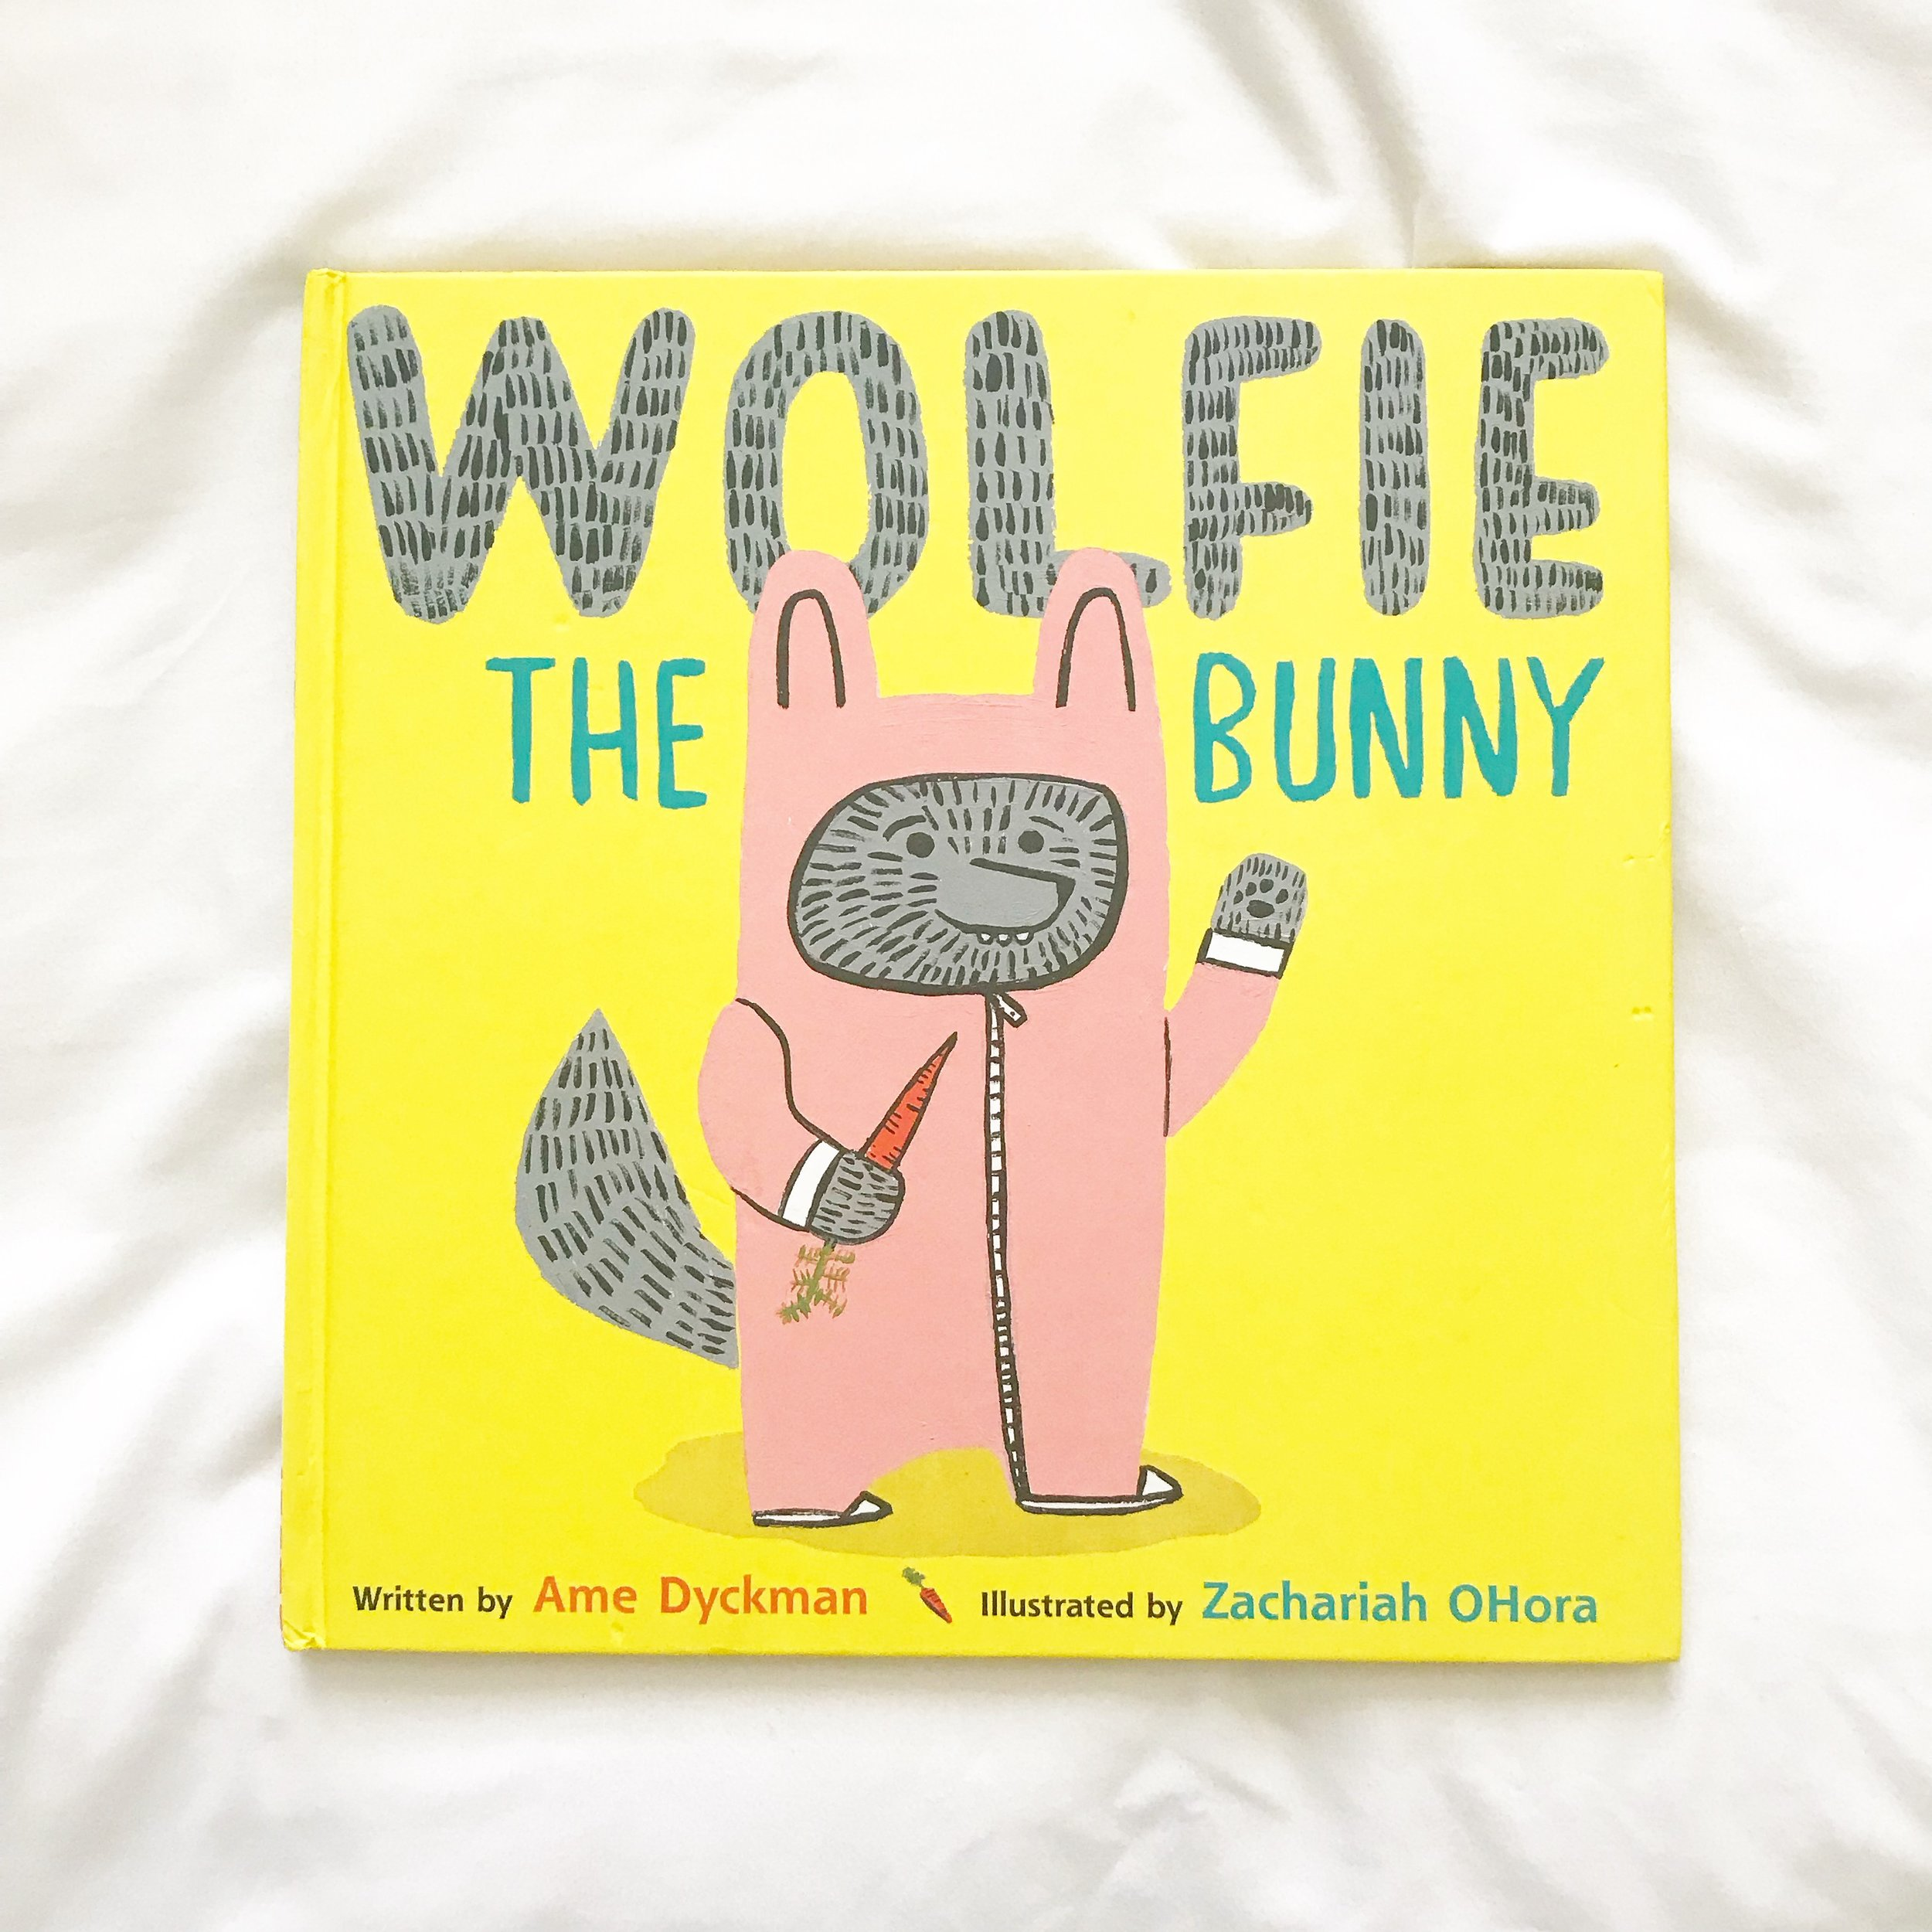 Wolfie the Bunny   The bunny family adopted a wolf son - sure to be a silly story!  Will he eat his family?!